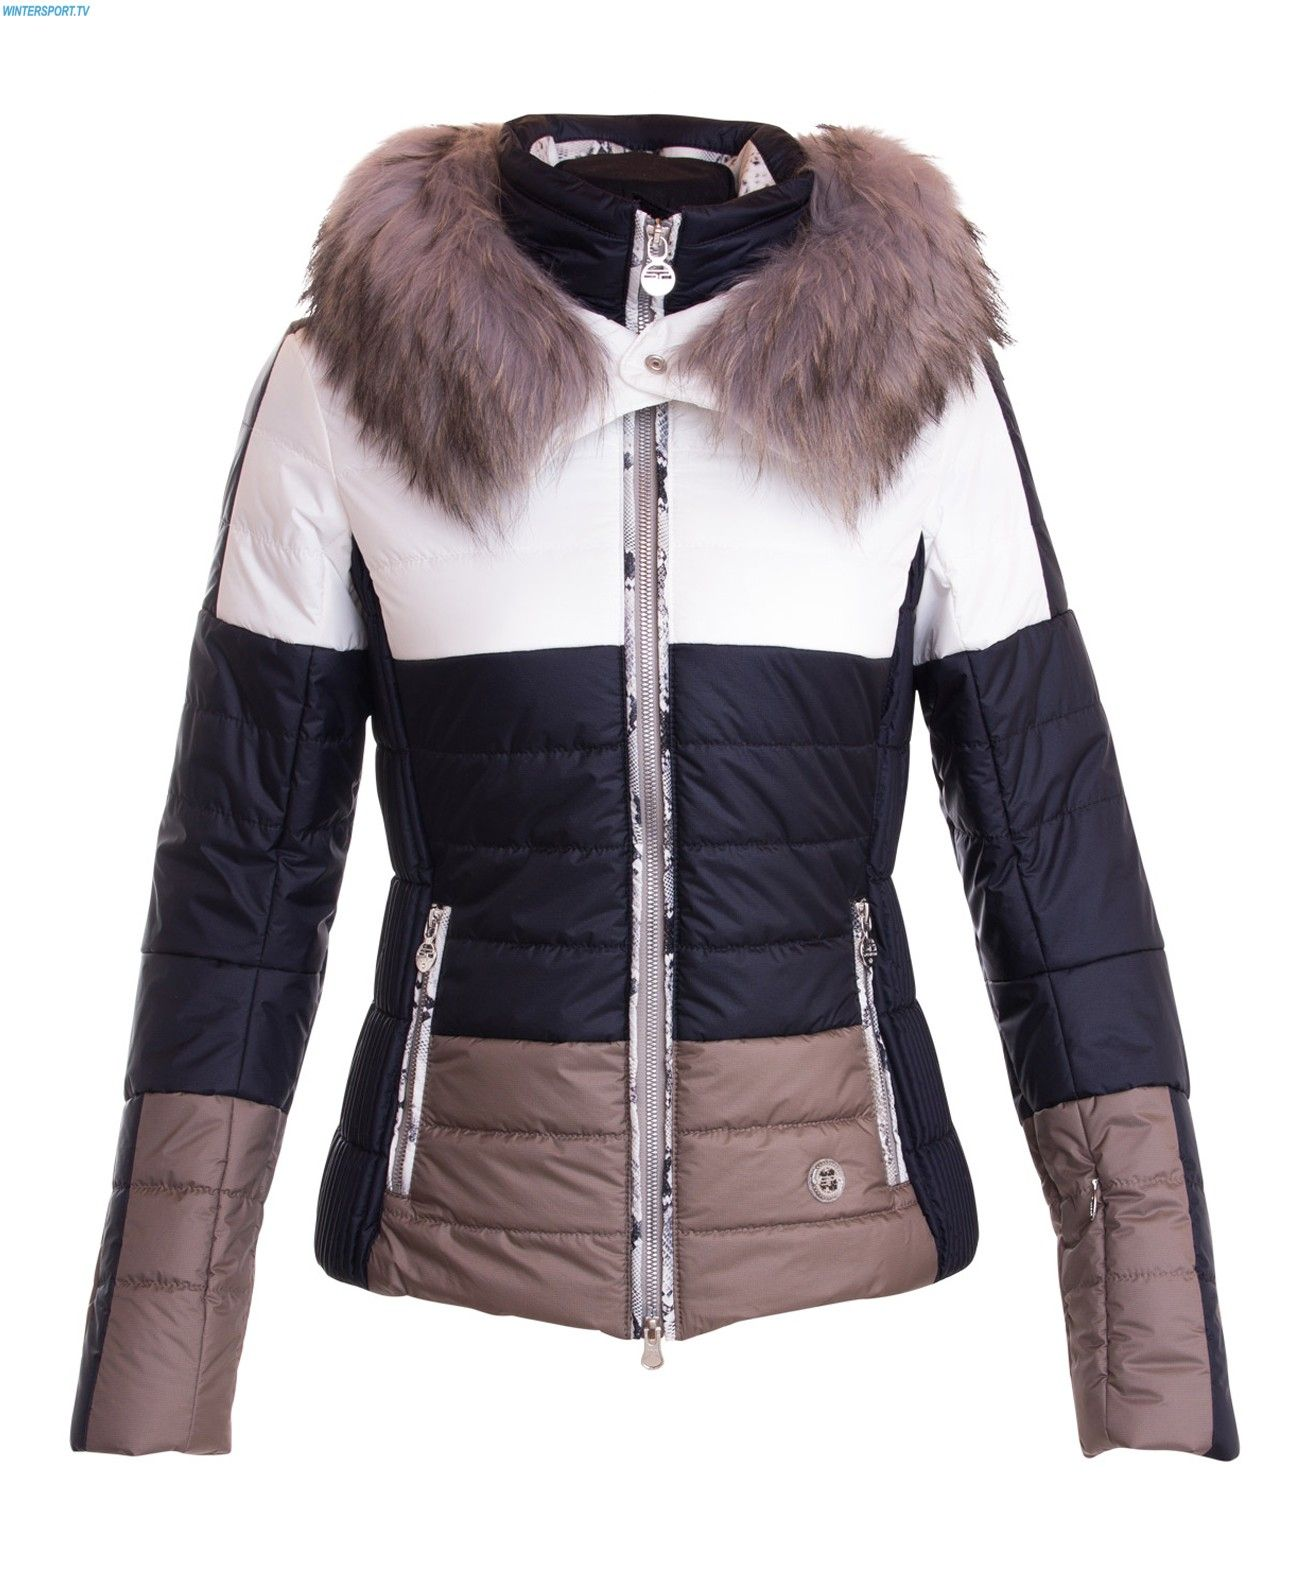 Sportalm Women Huntsville Wild Lightness Jacket with Hood and Fur – Offwhite 7375230dec